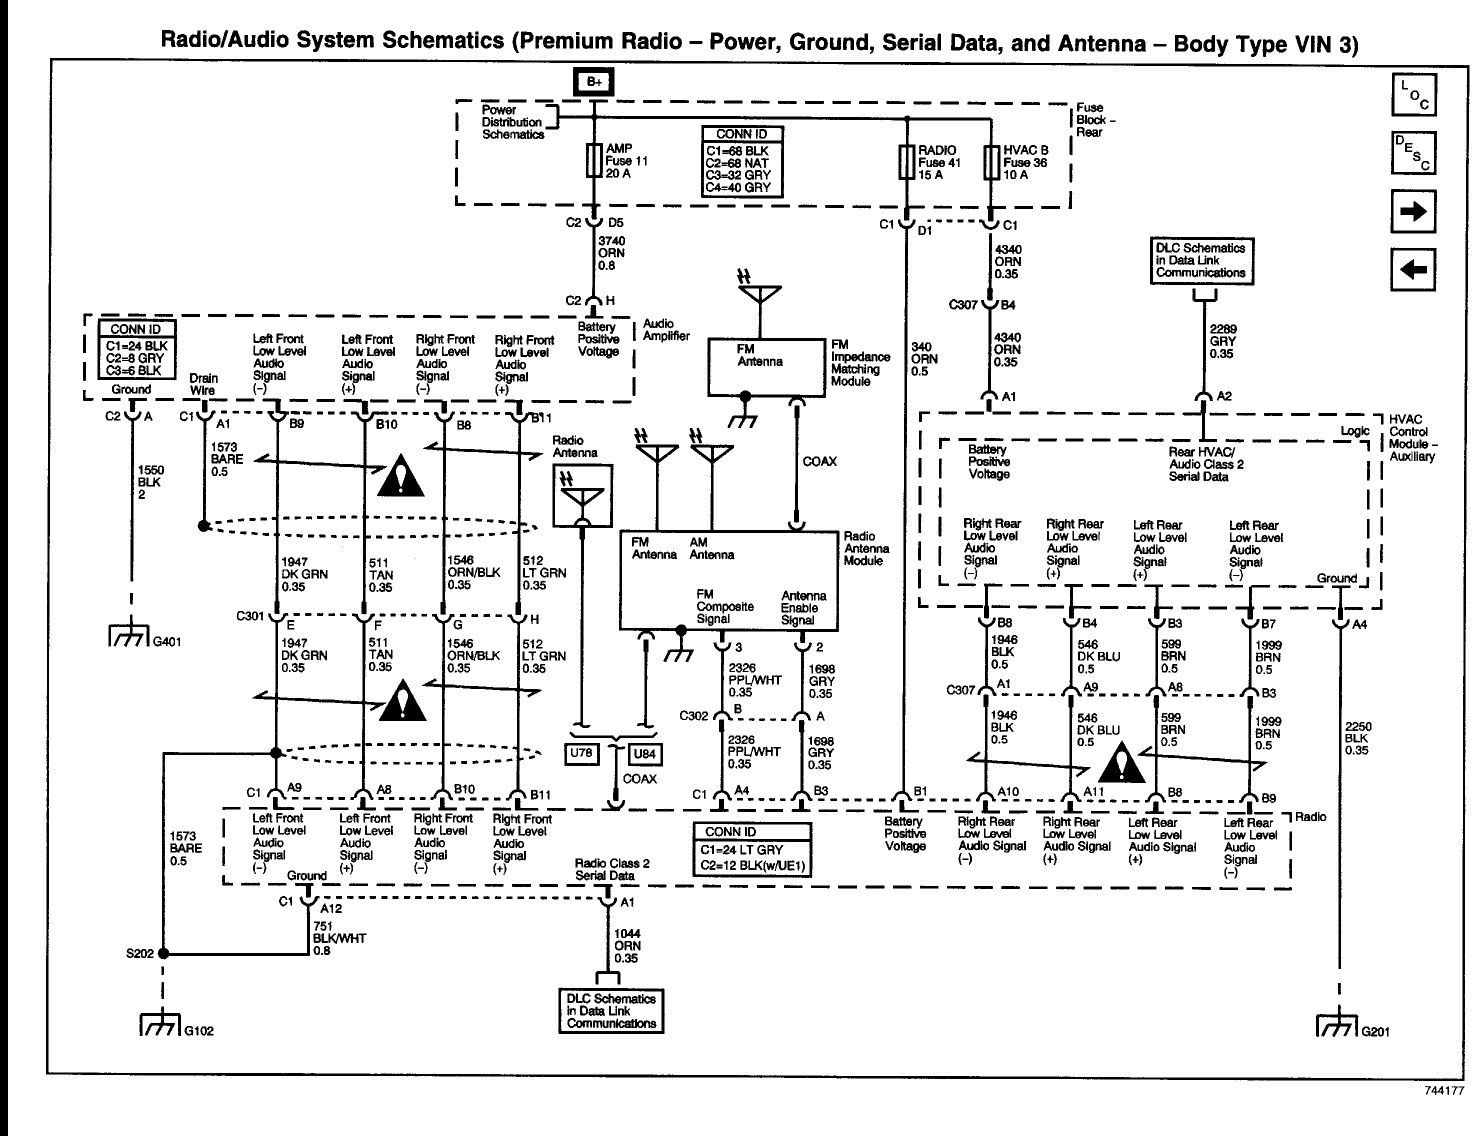 2003 Gmc Envoy Radio Wiring Diagram 2006 Impala To Printable 2002 | Gmc  trucks, Gmc truck accessories, Gmc envoy | 2005 Gmc Yukon Engine Diagrams |  | Pinterest